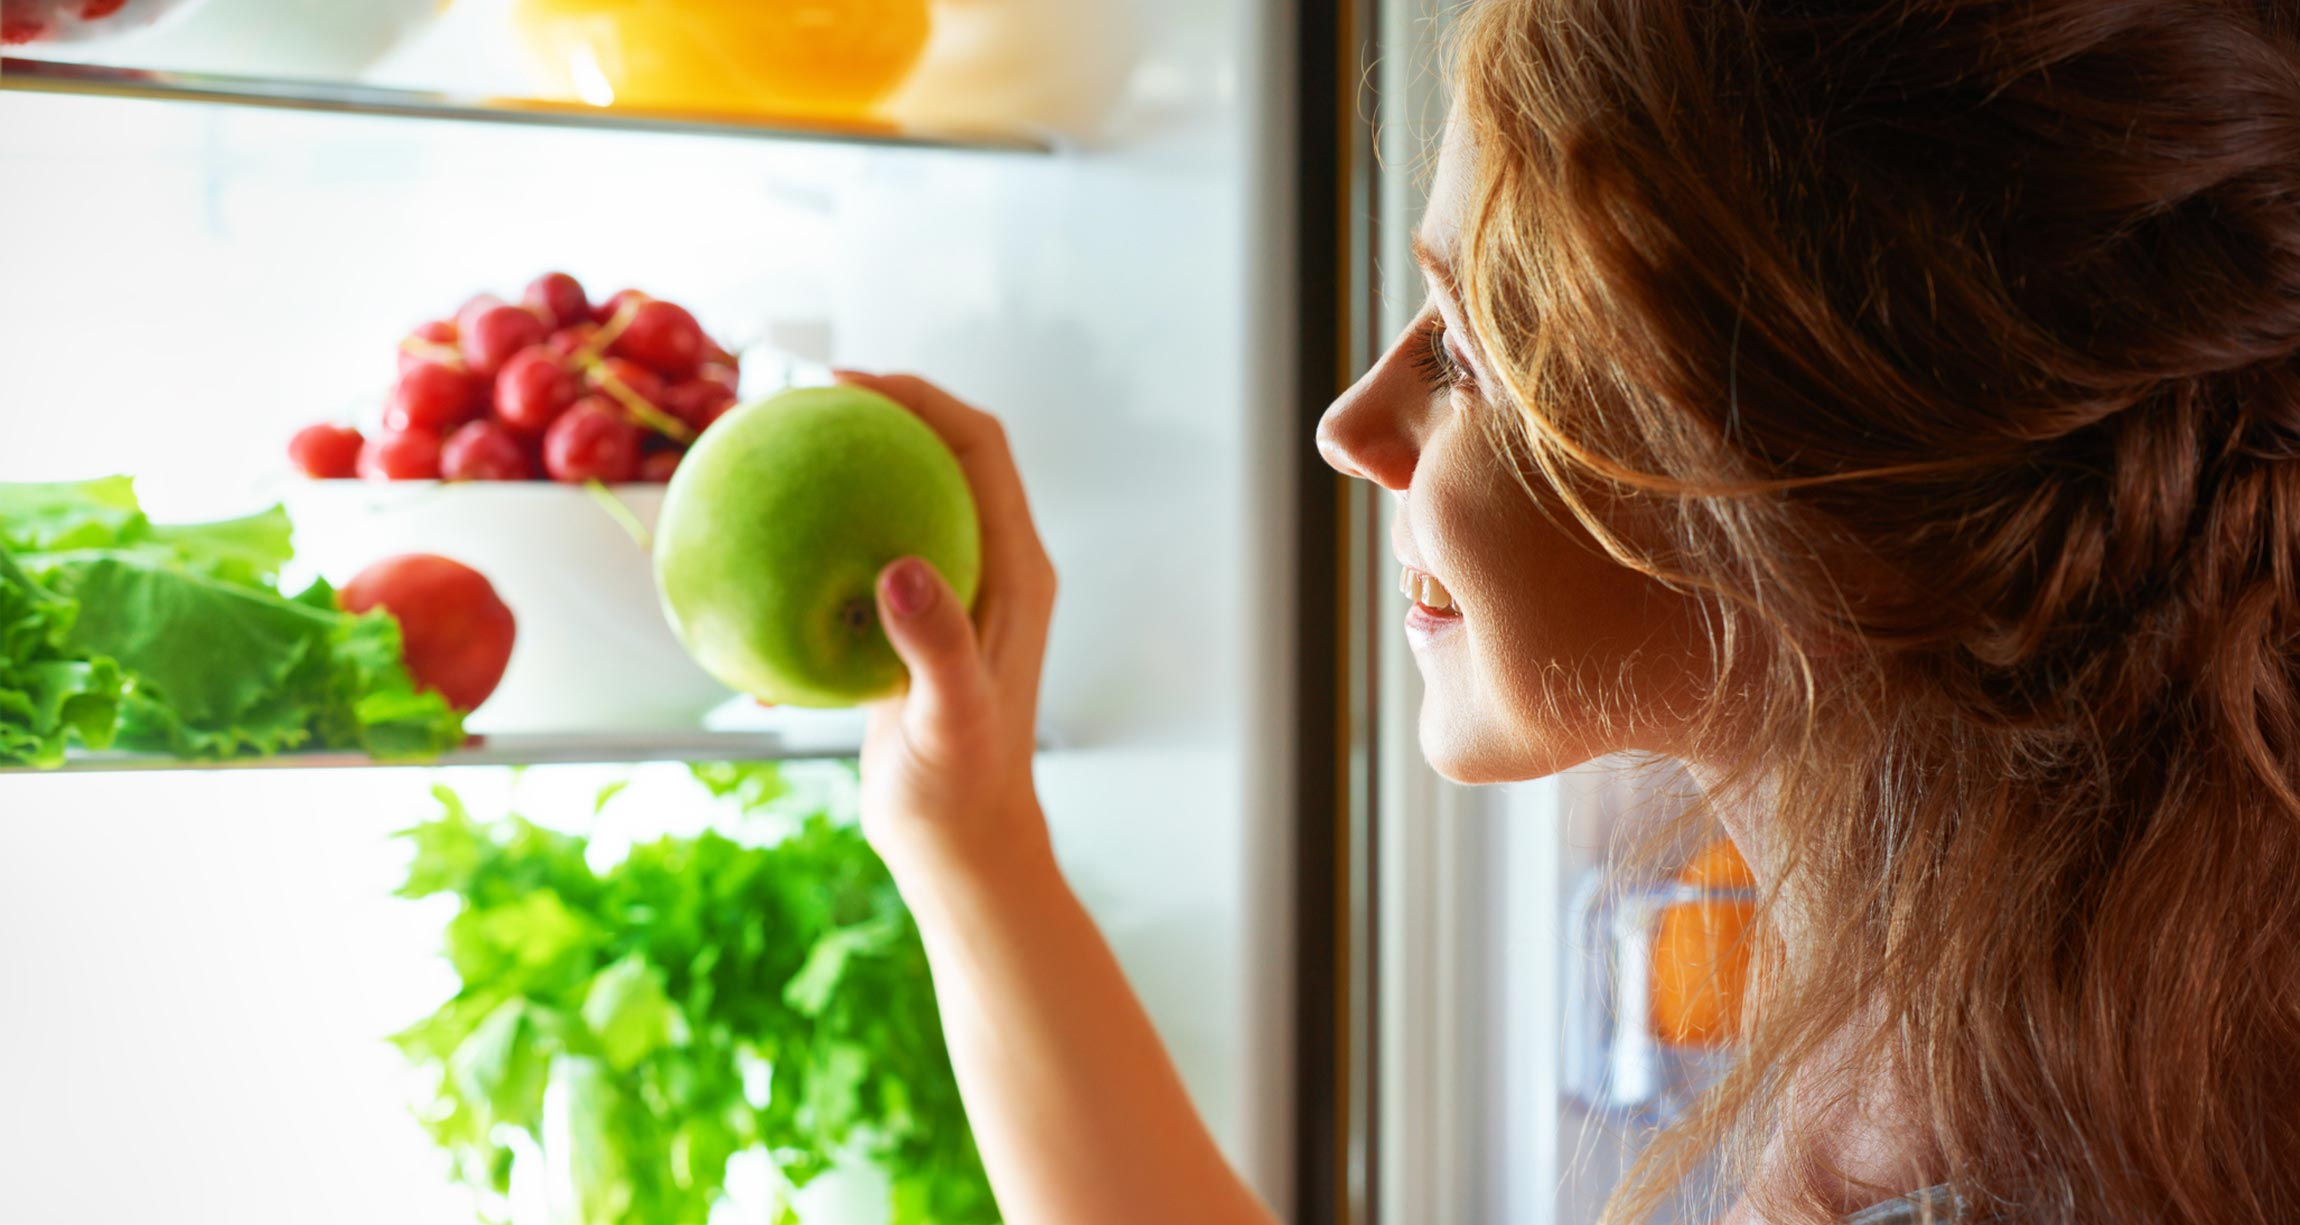 See What Healthy Staple Foods A Plant-Based Cooking Instructor Keeps in Her Fridge